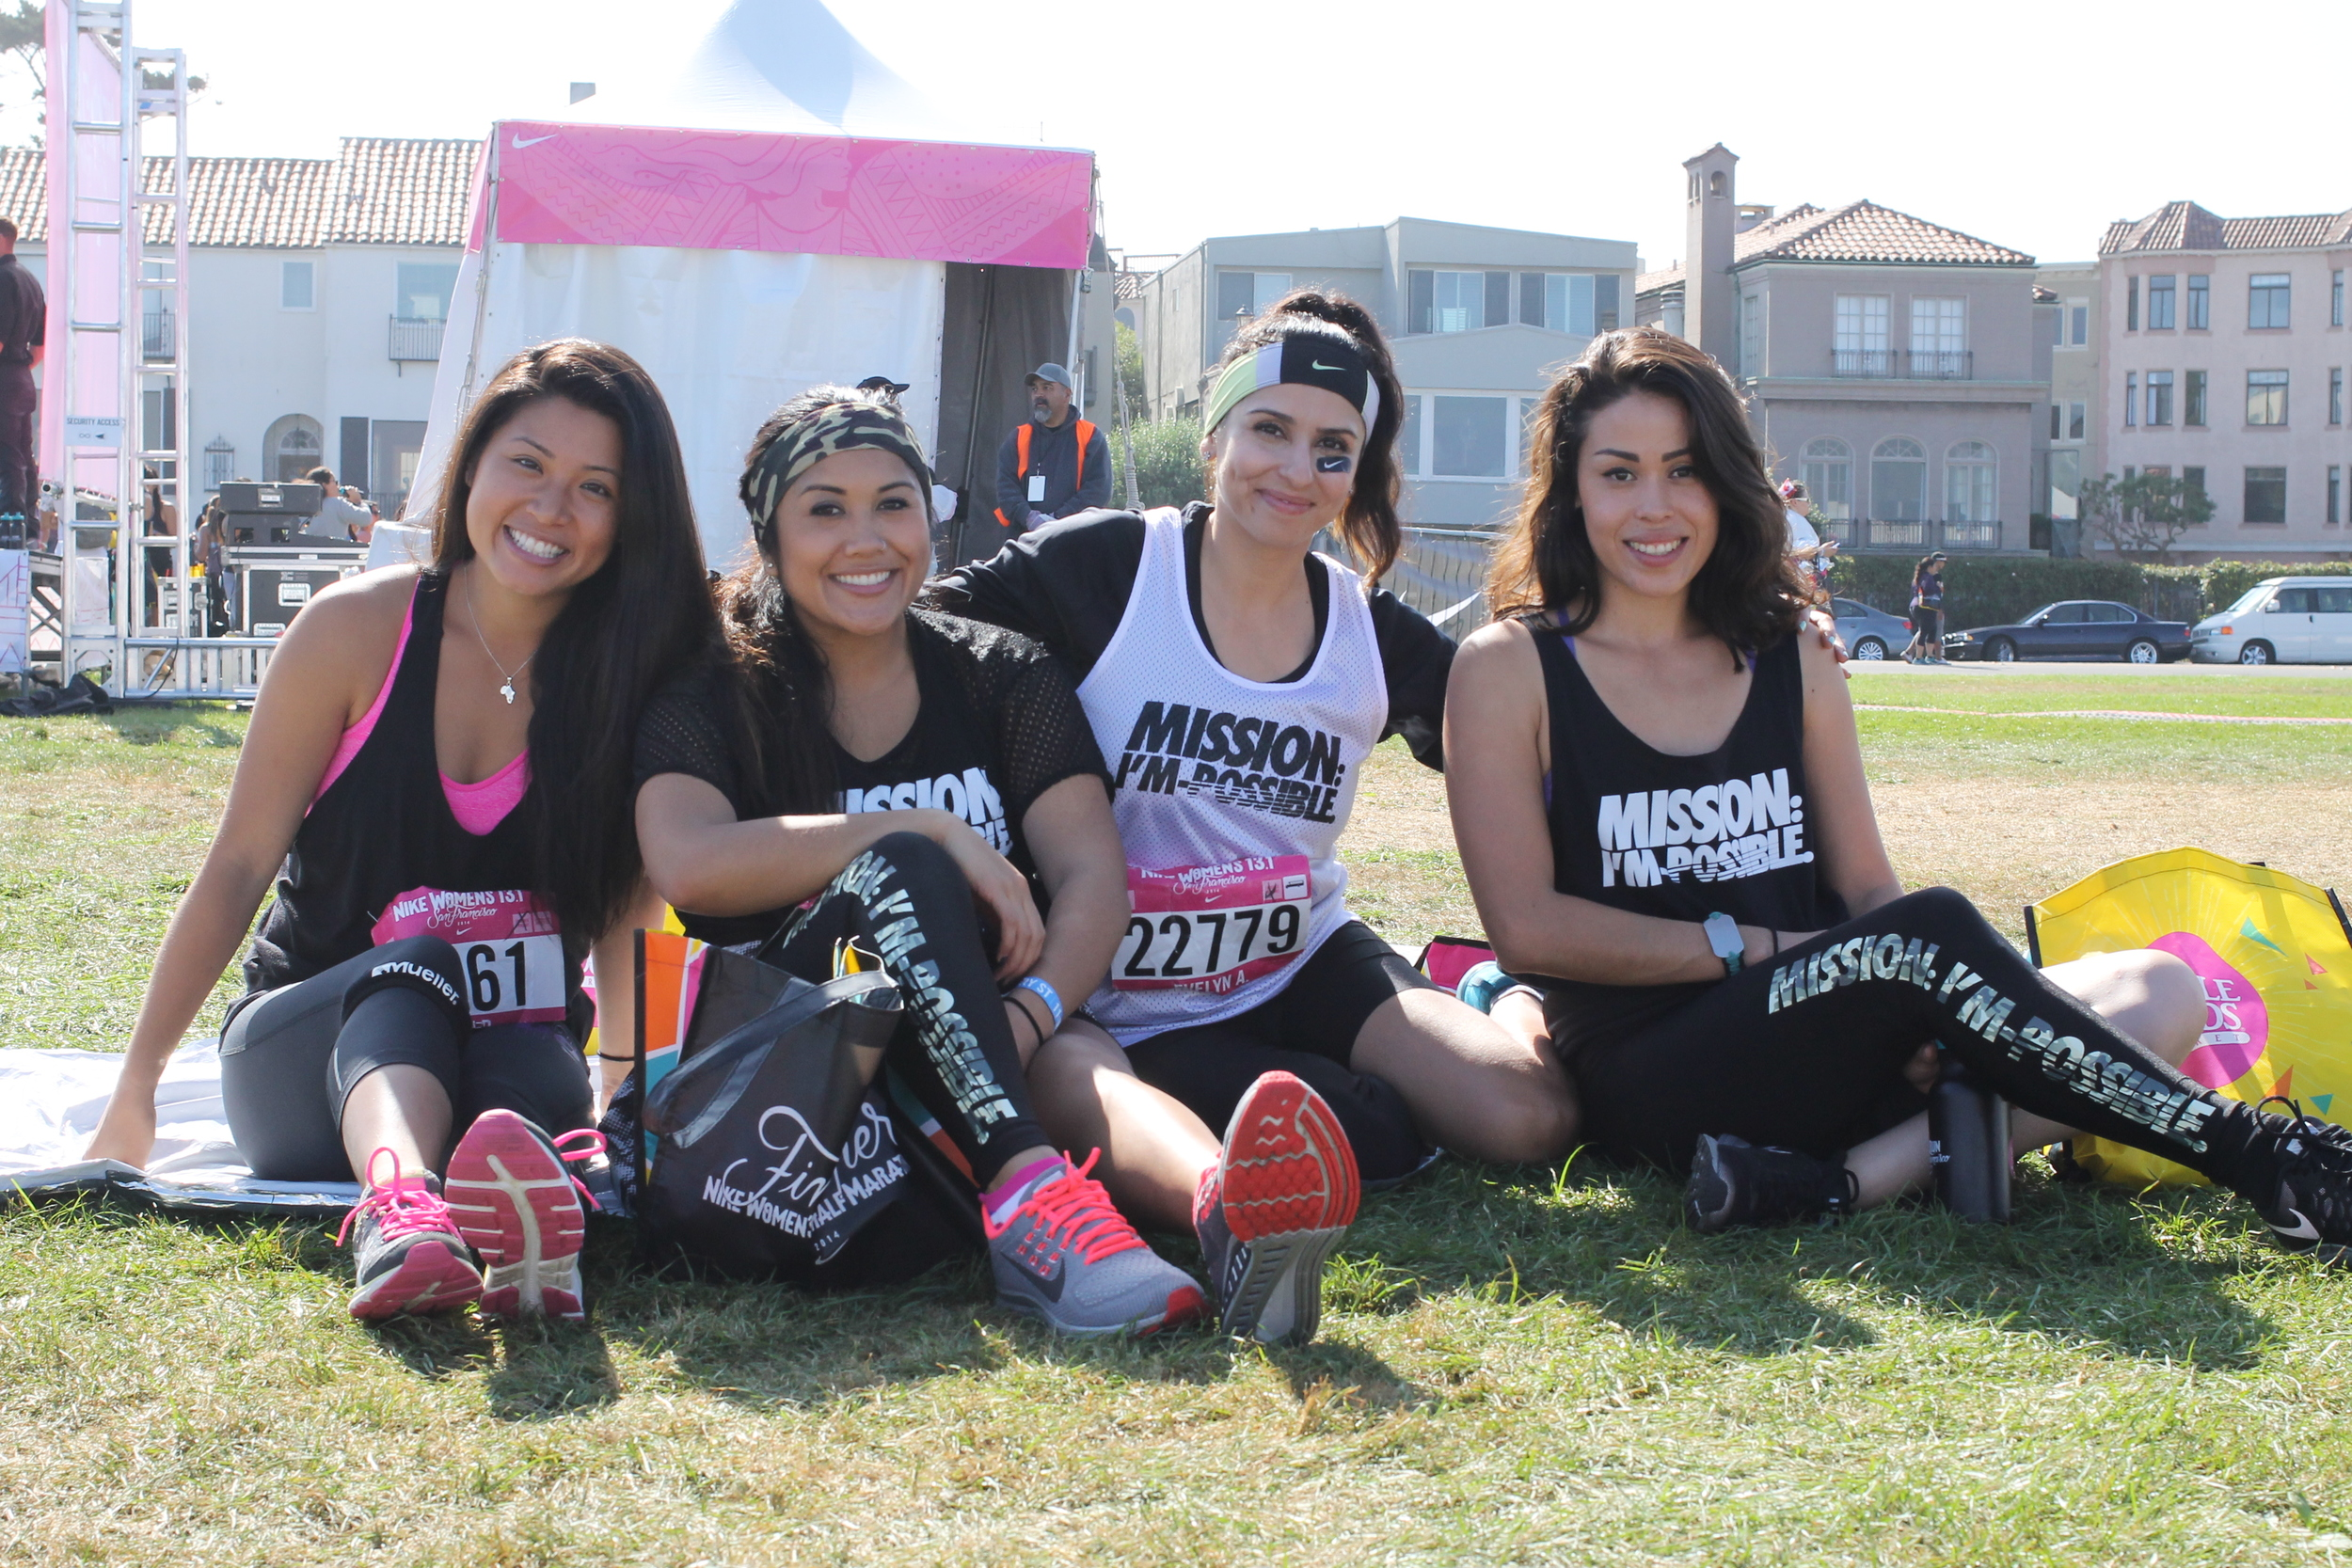 Nike Women's Half Marathon 2014 #werunSF #strongertogether